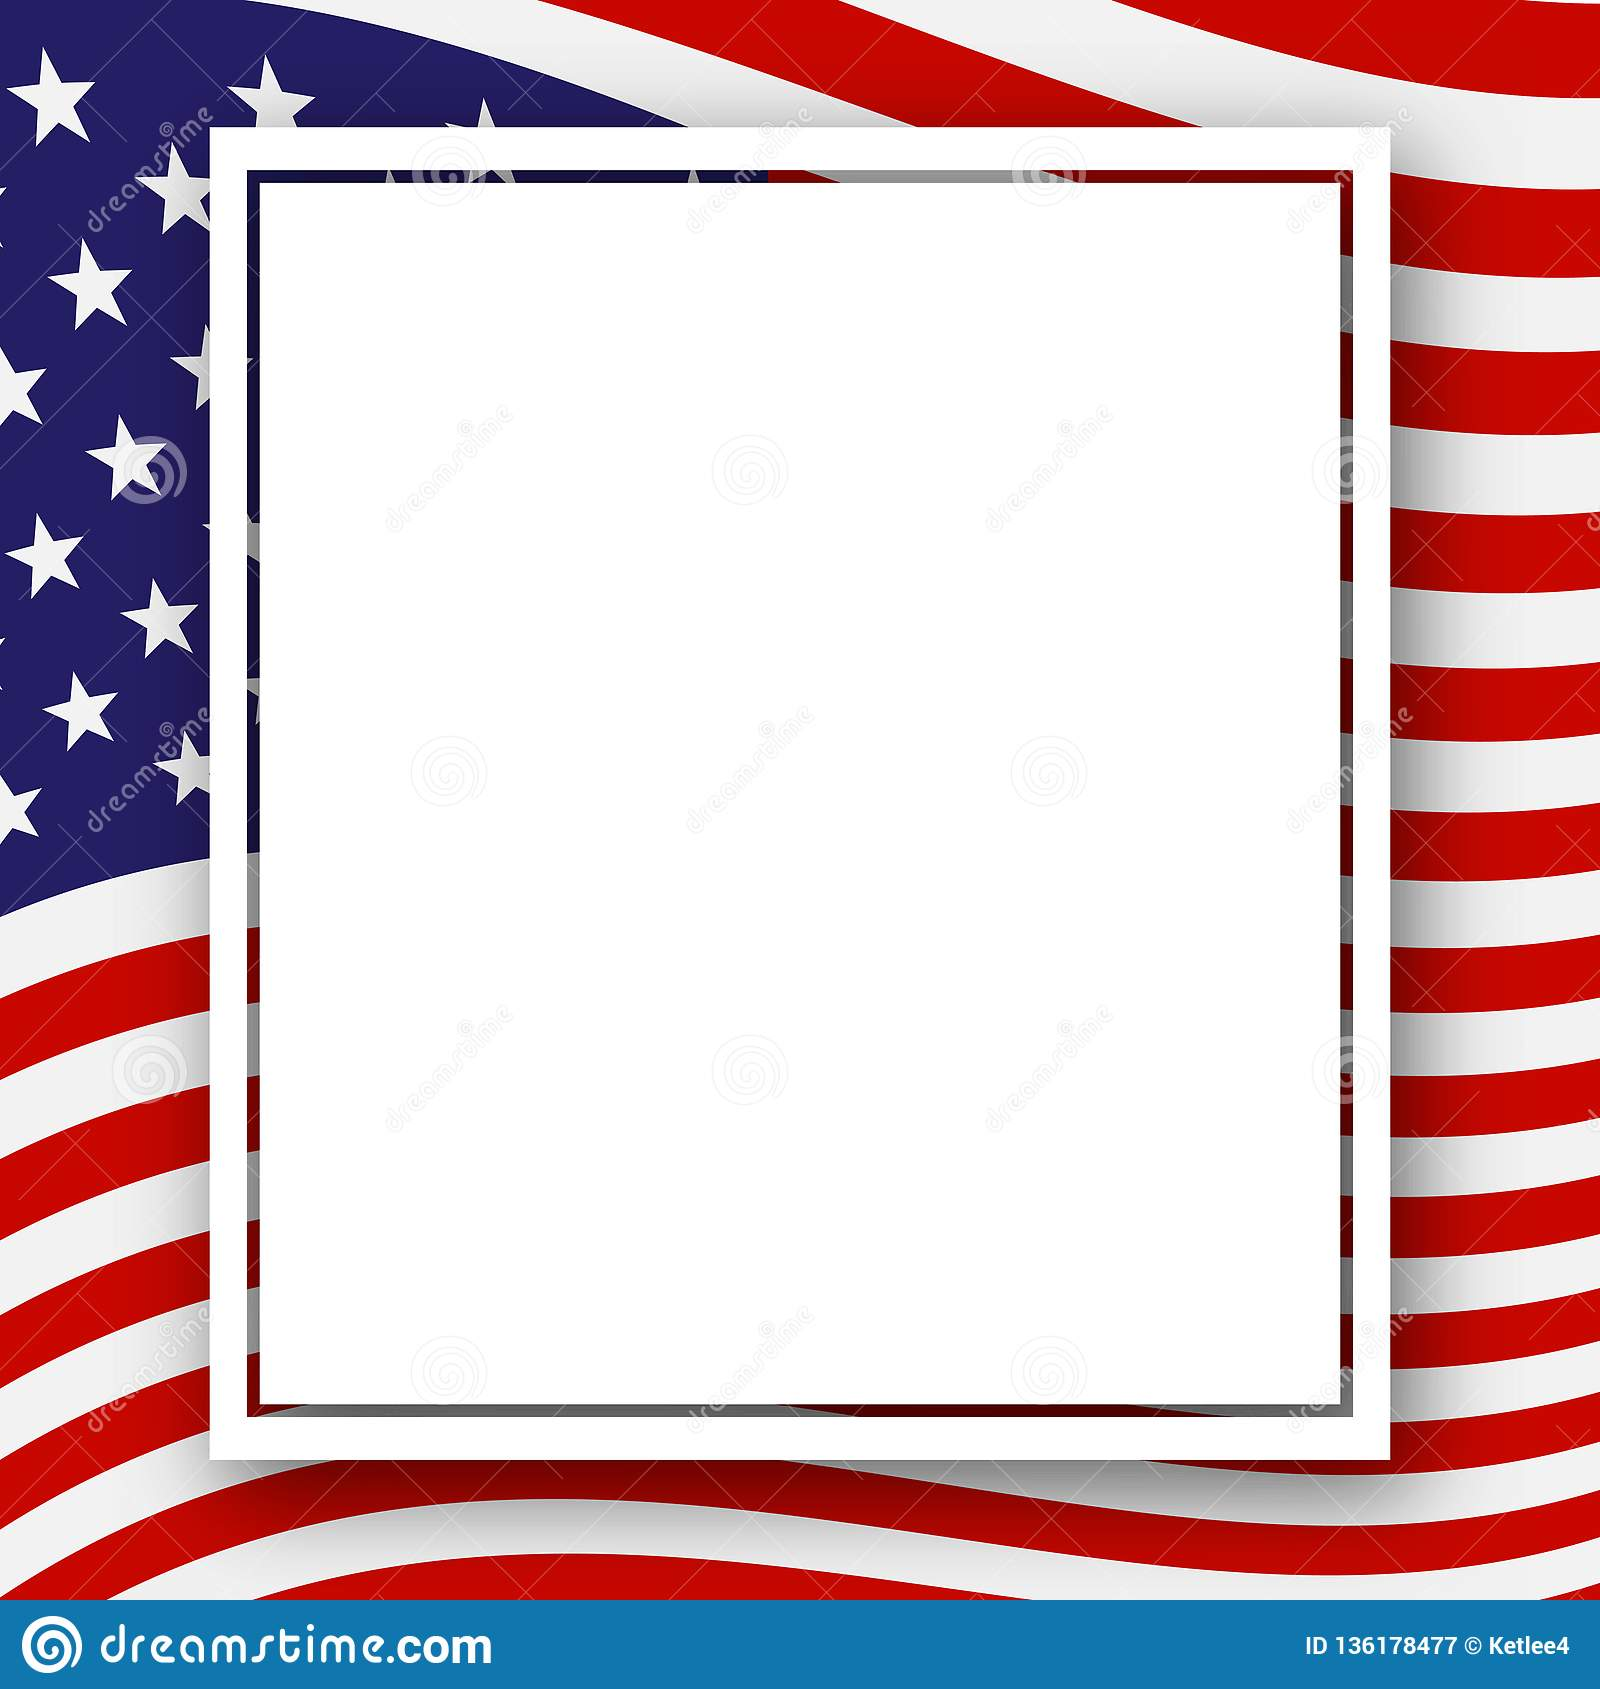 Template With A Pattern Of Stars And Stripes Of Colors Of